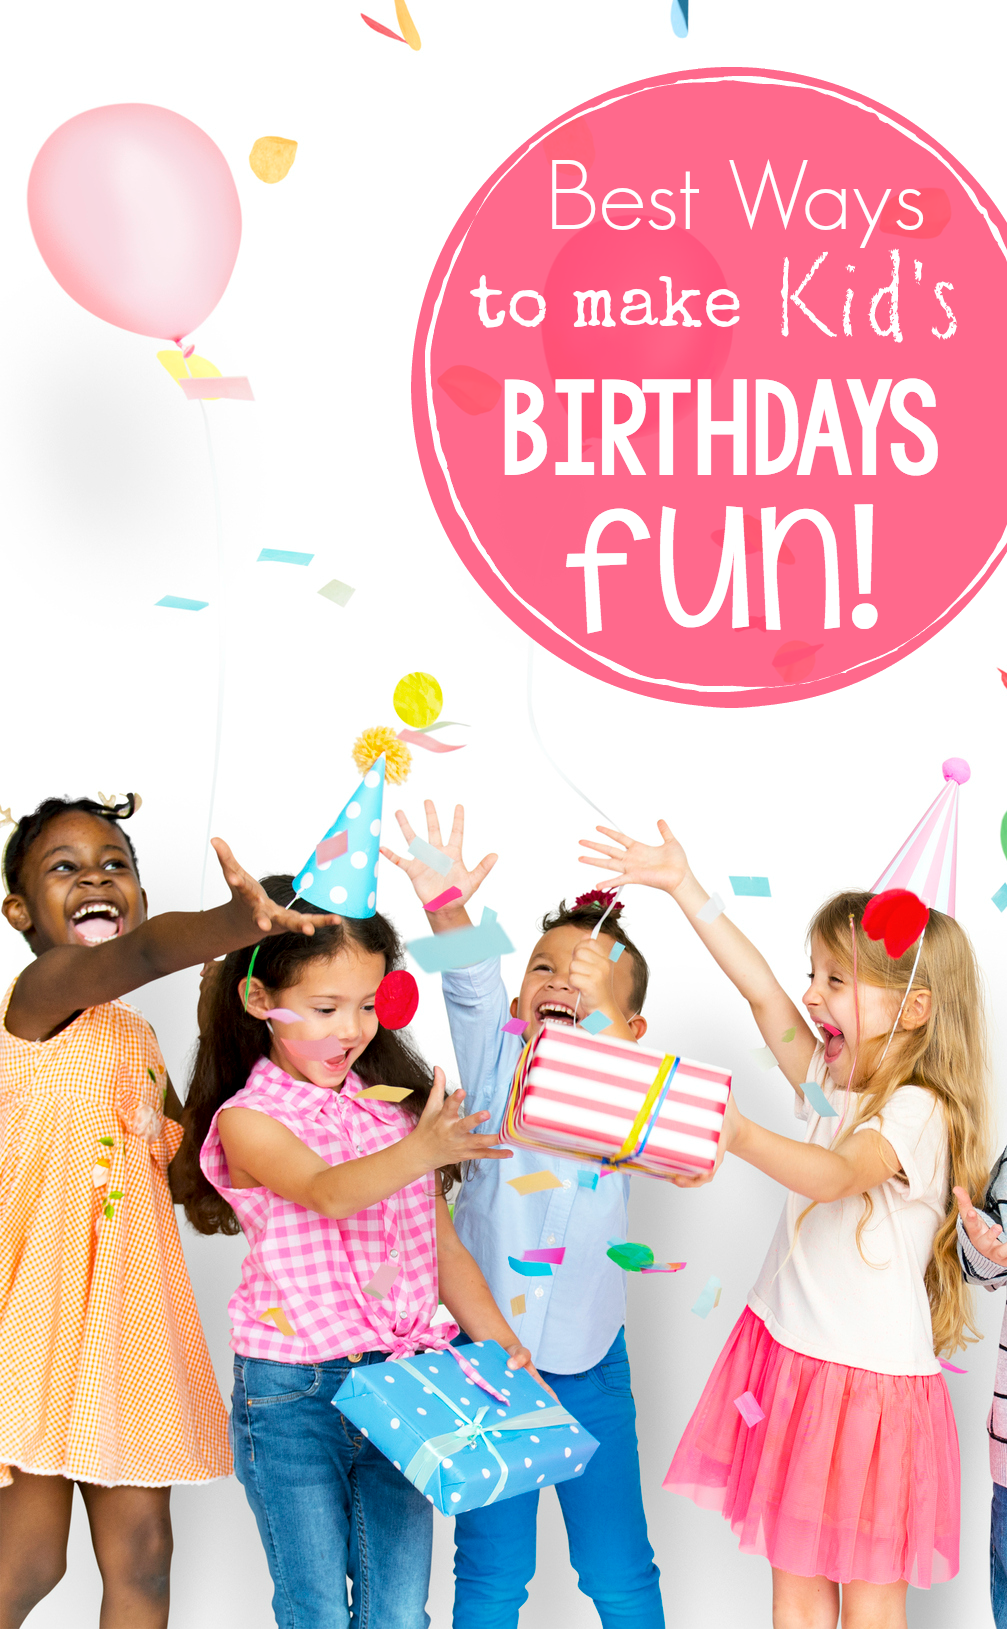 Kid's Birthday Celebration Ideas-Try these simple ways to celebrate a birthday to make your kid's birthday super fun! Easy to pull off but things they will remember for years to come, these are great birthday traditions to start now. #birthday #birthdayparty #birthdaygifts #birthdaydecorations #birthdaygirl #birthdayboy #kids